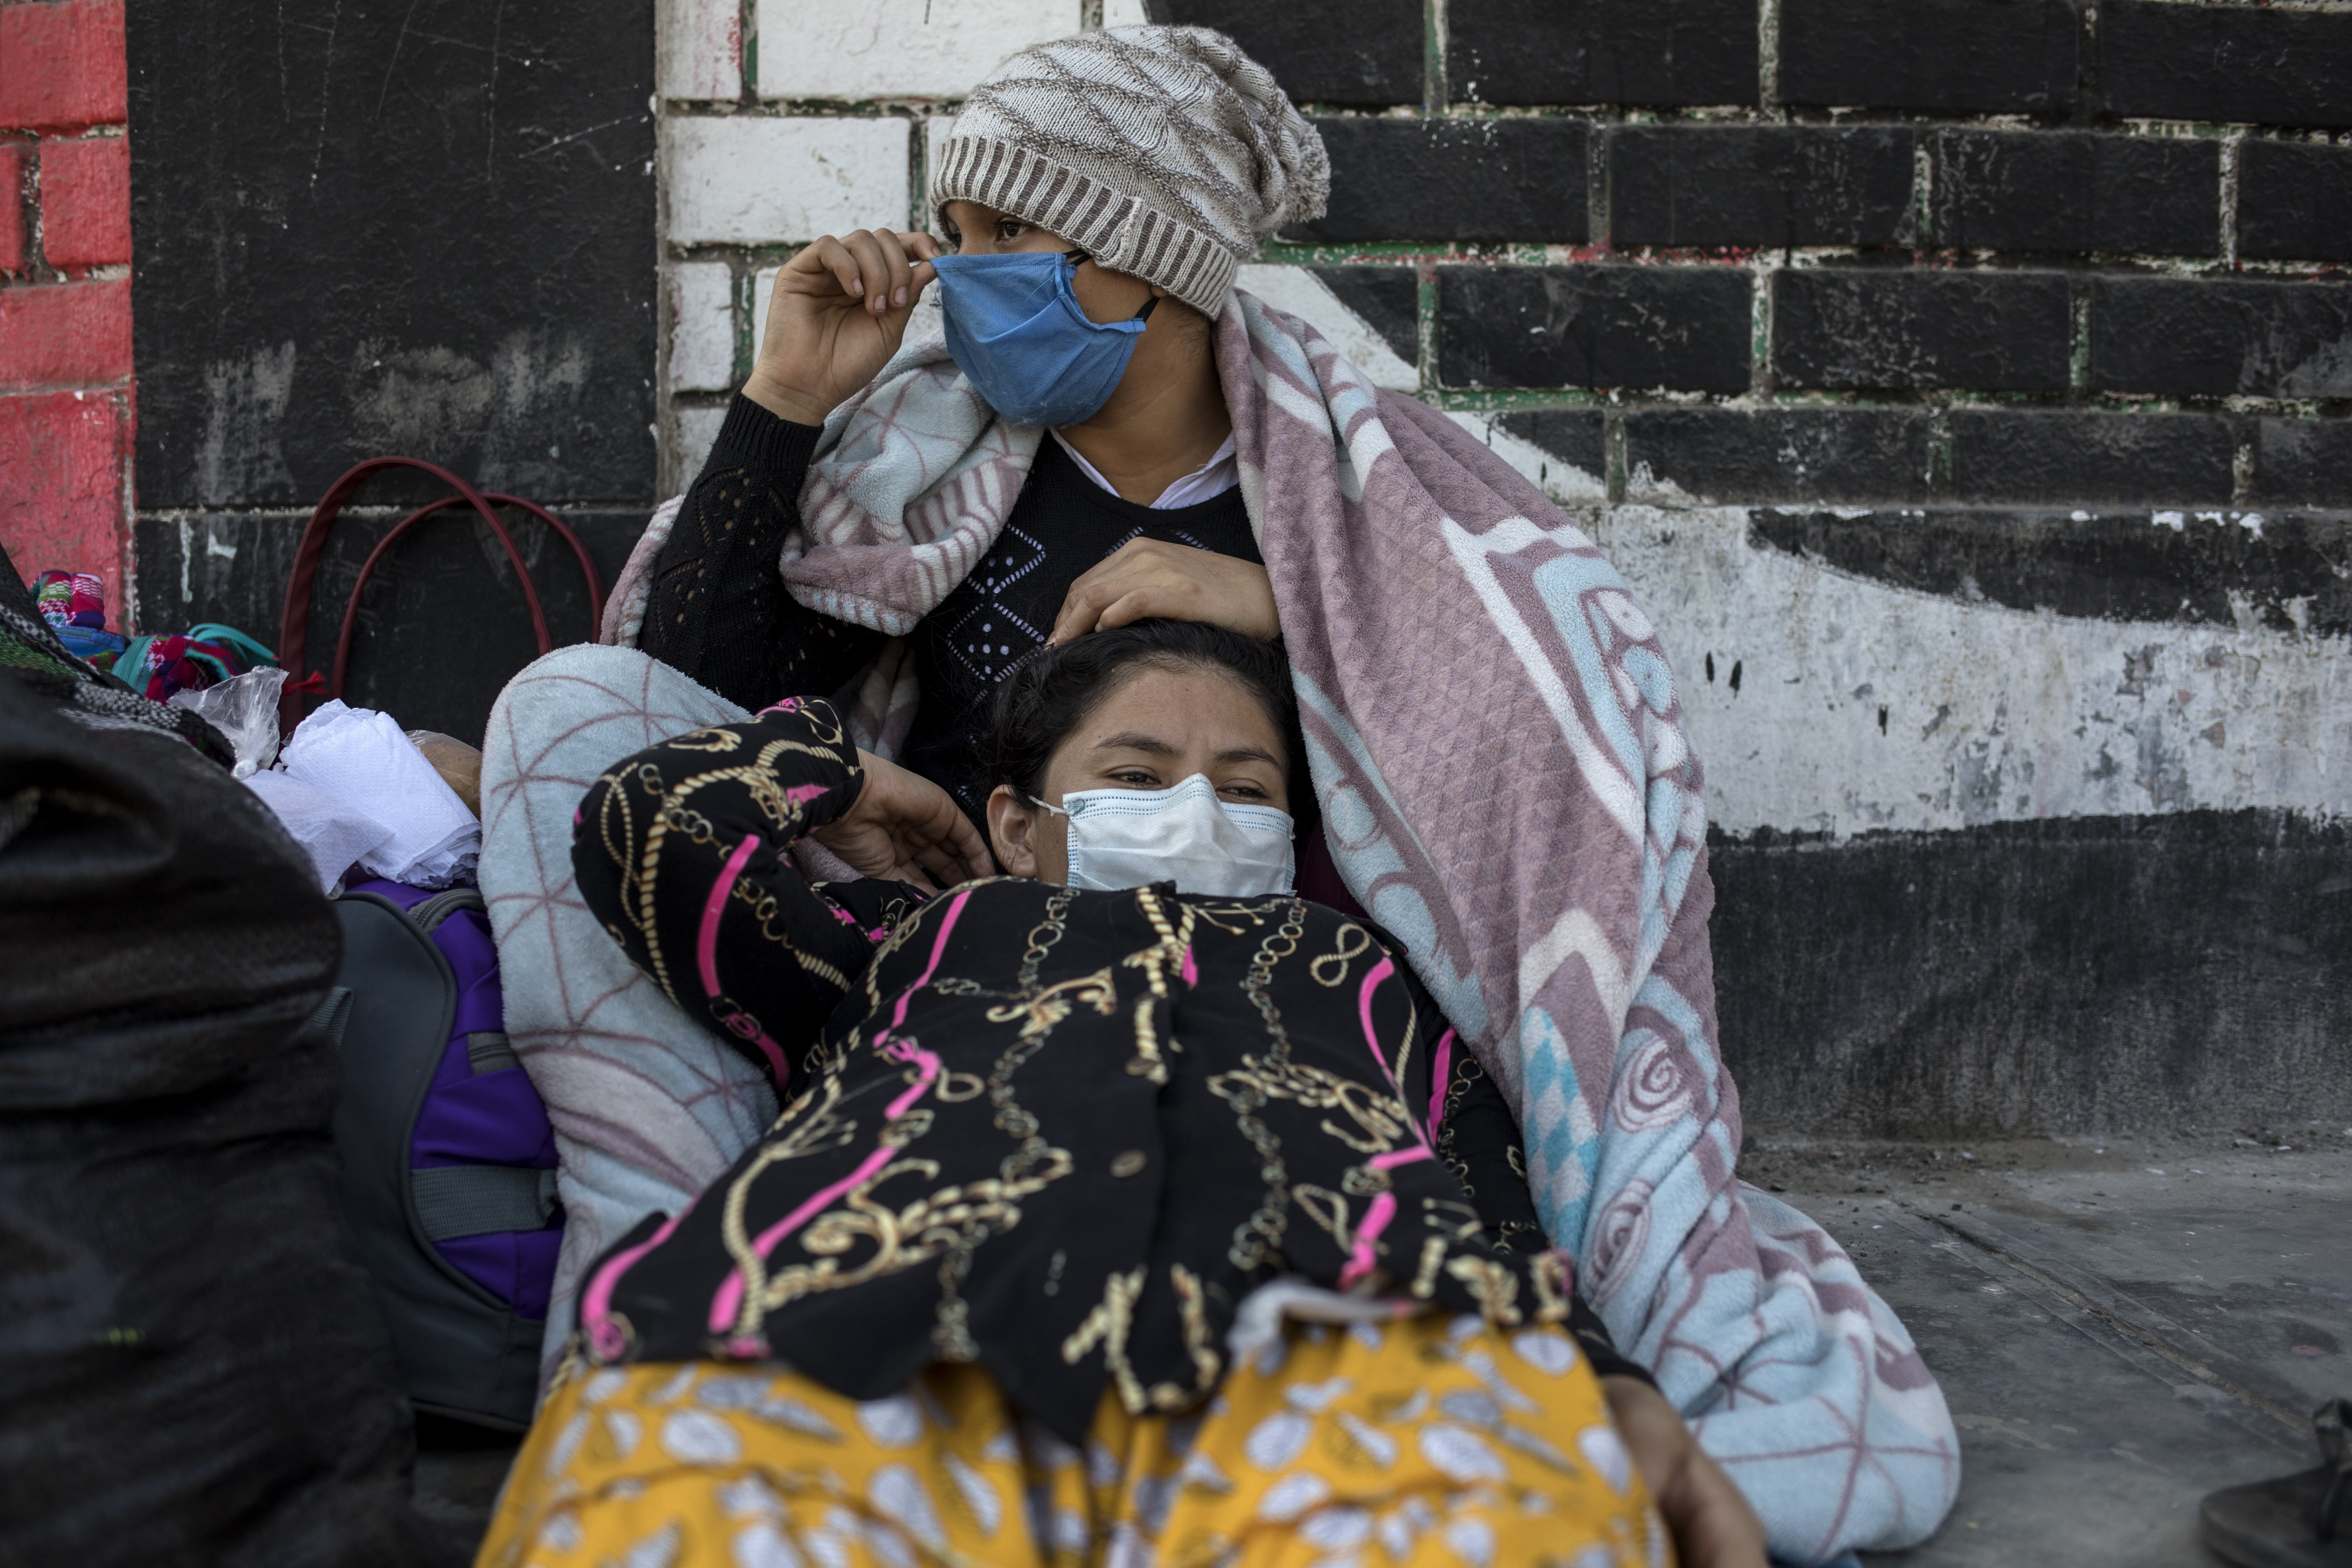 Milka Segura, 15, rests with her sister Ruth, 20, in a makeshift camp on the side of a highway, Tuesday, April 21, 2020, in Lima, Peru. After not being allowed to leave the capital because the strict quarantine rules amid the new coronavirus pandemic, day laborers and informal workers are now allowed to travel home. (AP Photo/Rodrigo Abd)